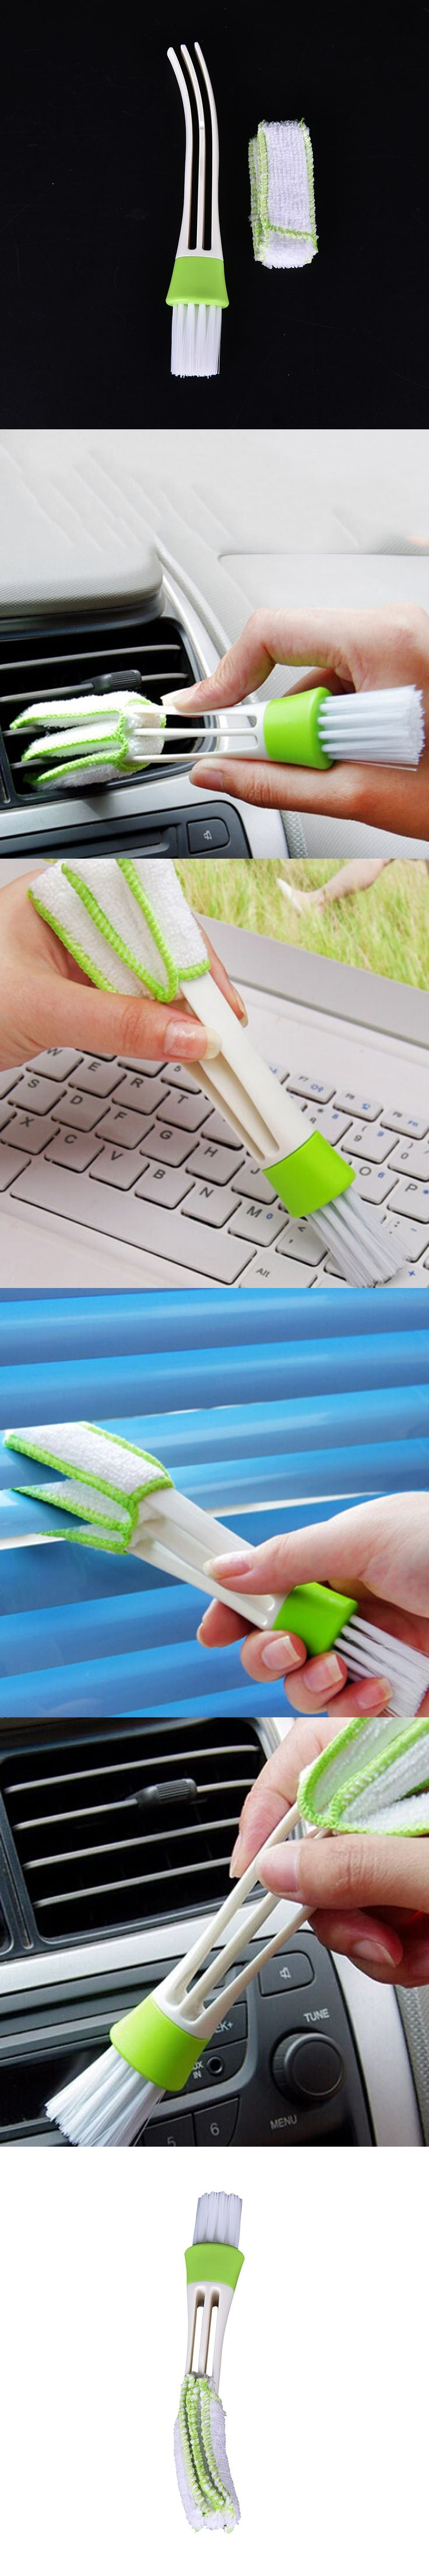 1Pcs Pocket Brush Keyboard Dust Collector Window Leaves Blinds Cleaner Duster Air-condition Cleaner Computer Clean Tools